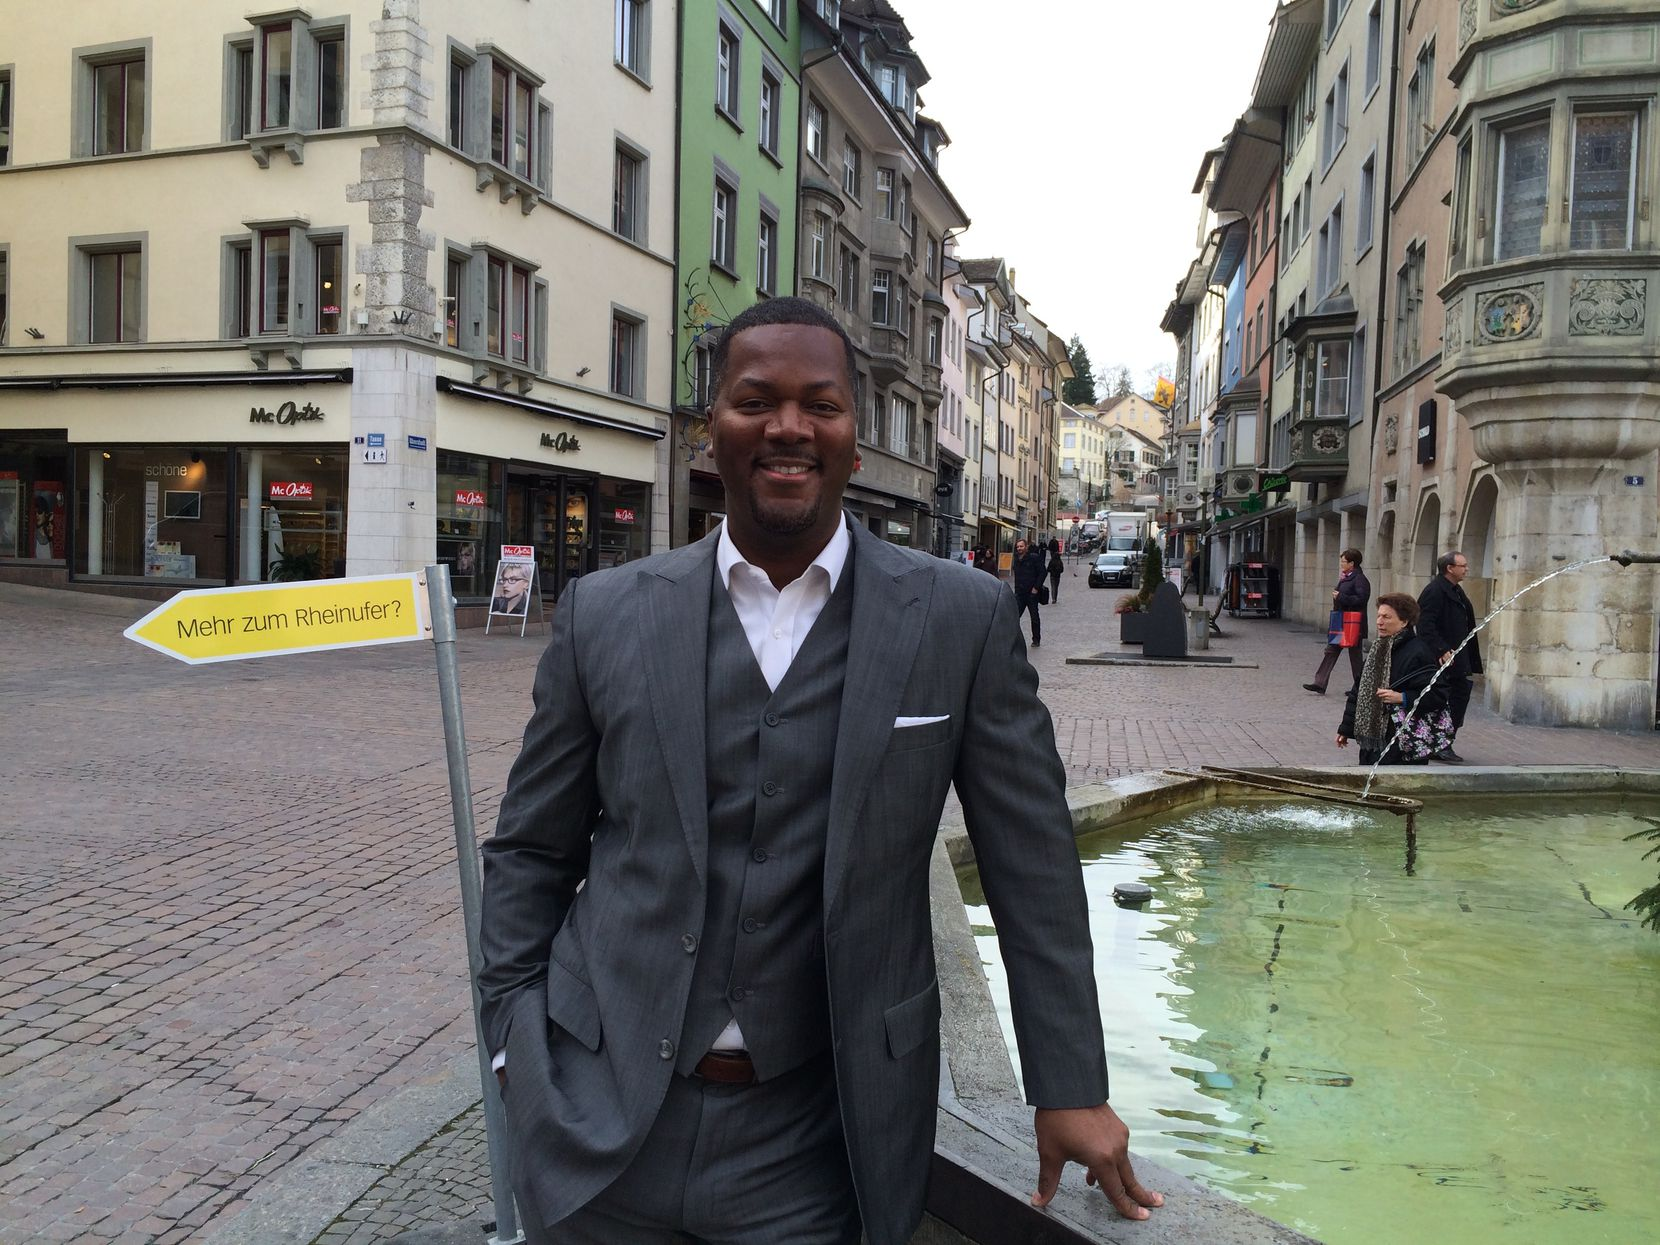 """Dennis Cail, co-founder and CEO of Zirtue, is shown on a business trip to Zurich, Switzerland. He says it's """"equally important for white people in Dallas to be inclusive as it is for Black people to invest in themselves and each other."""""""